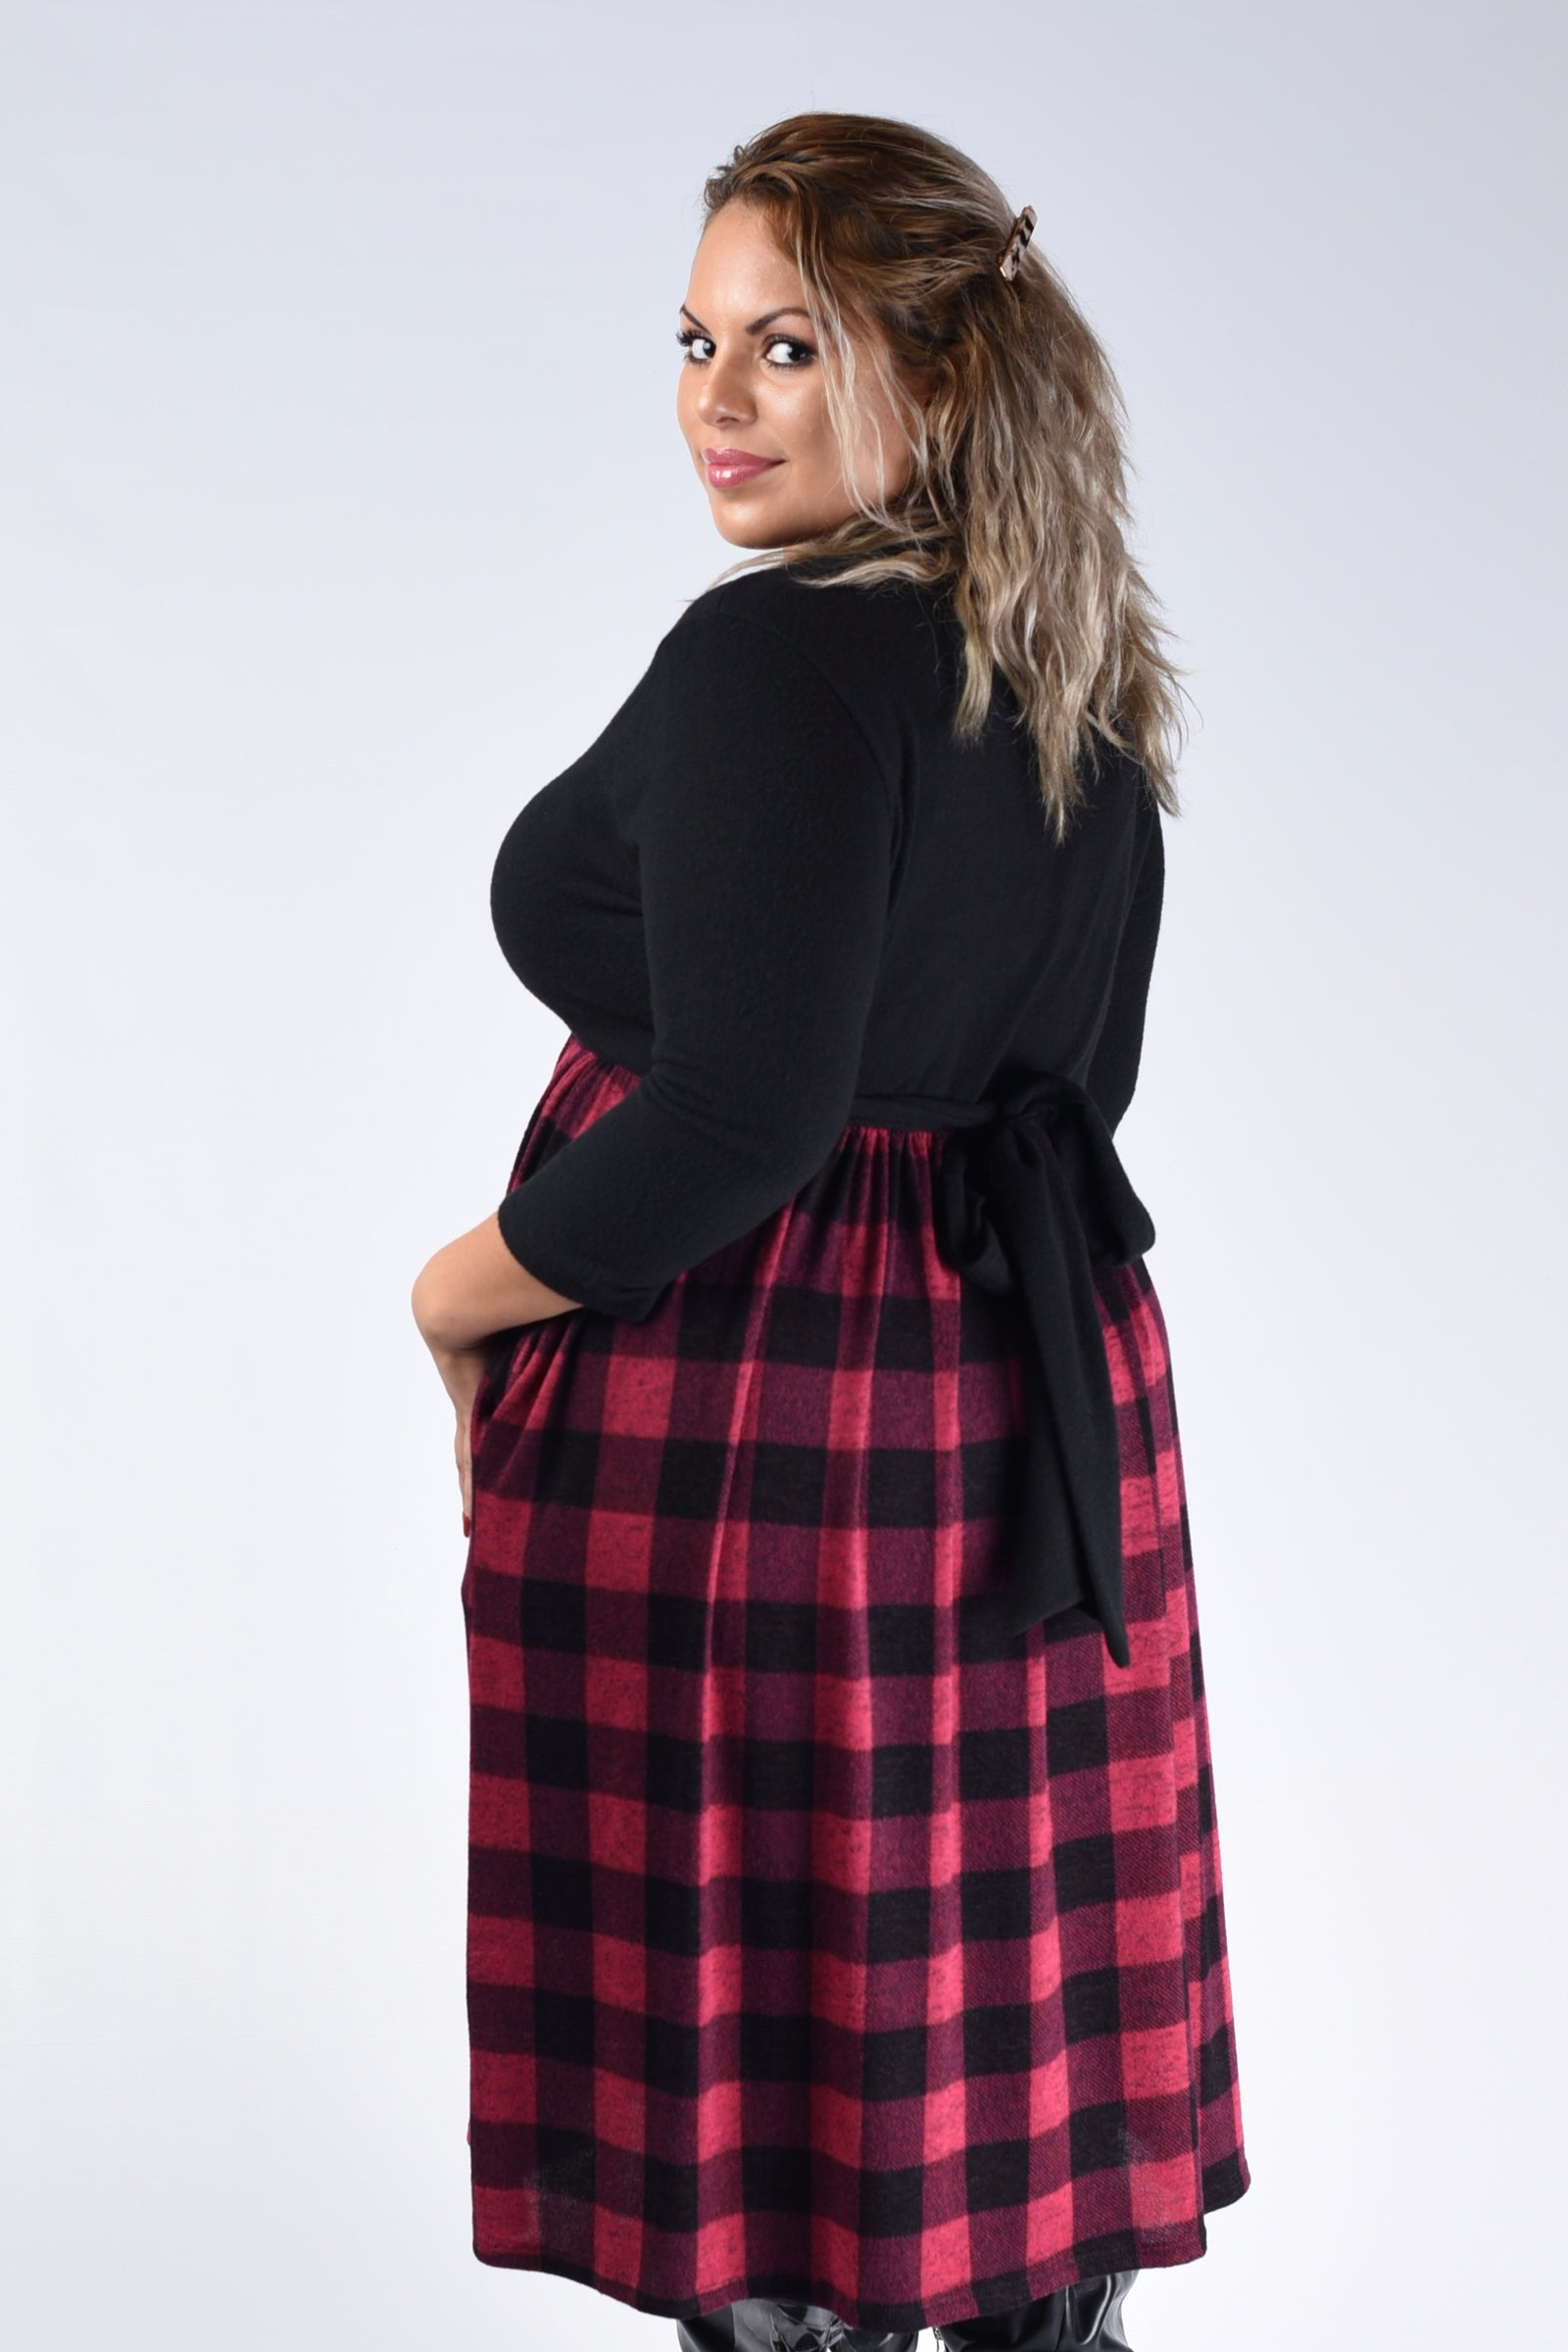 Red & Black Plaid Checker Tie Dress - www.mycurvystore.com - Curvy Boutique - Plus Size